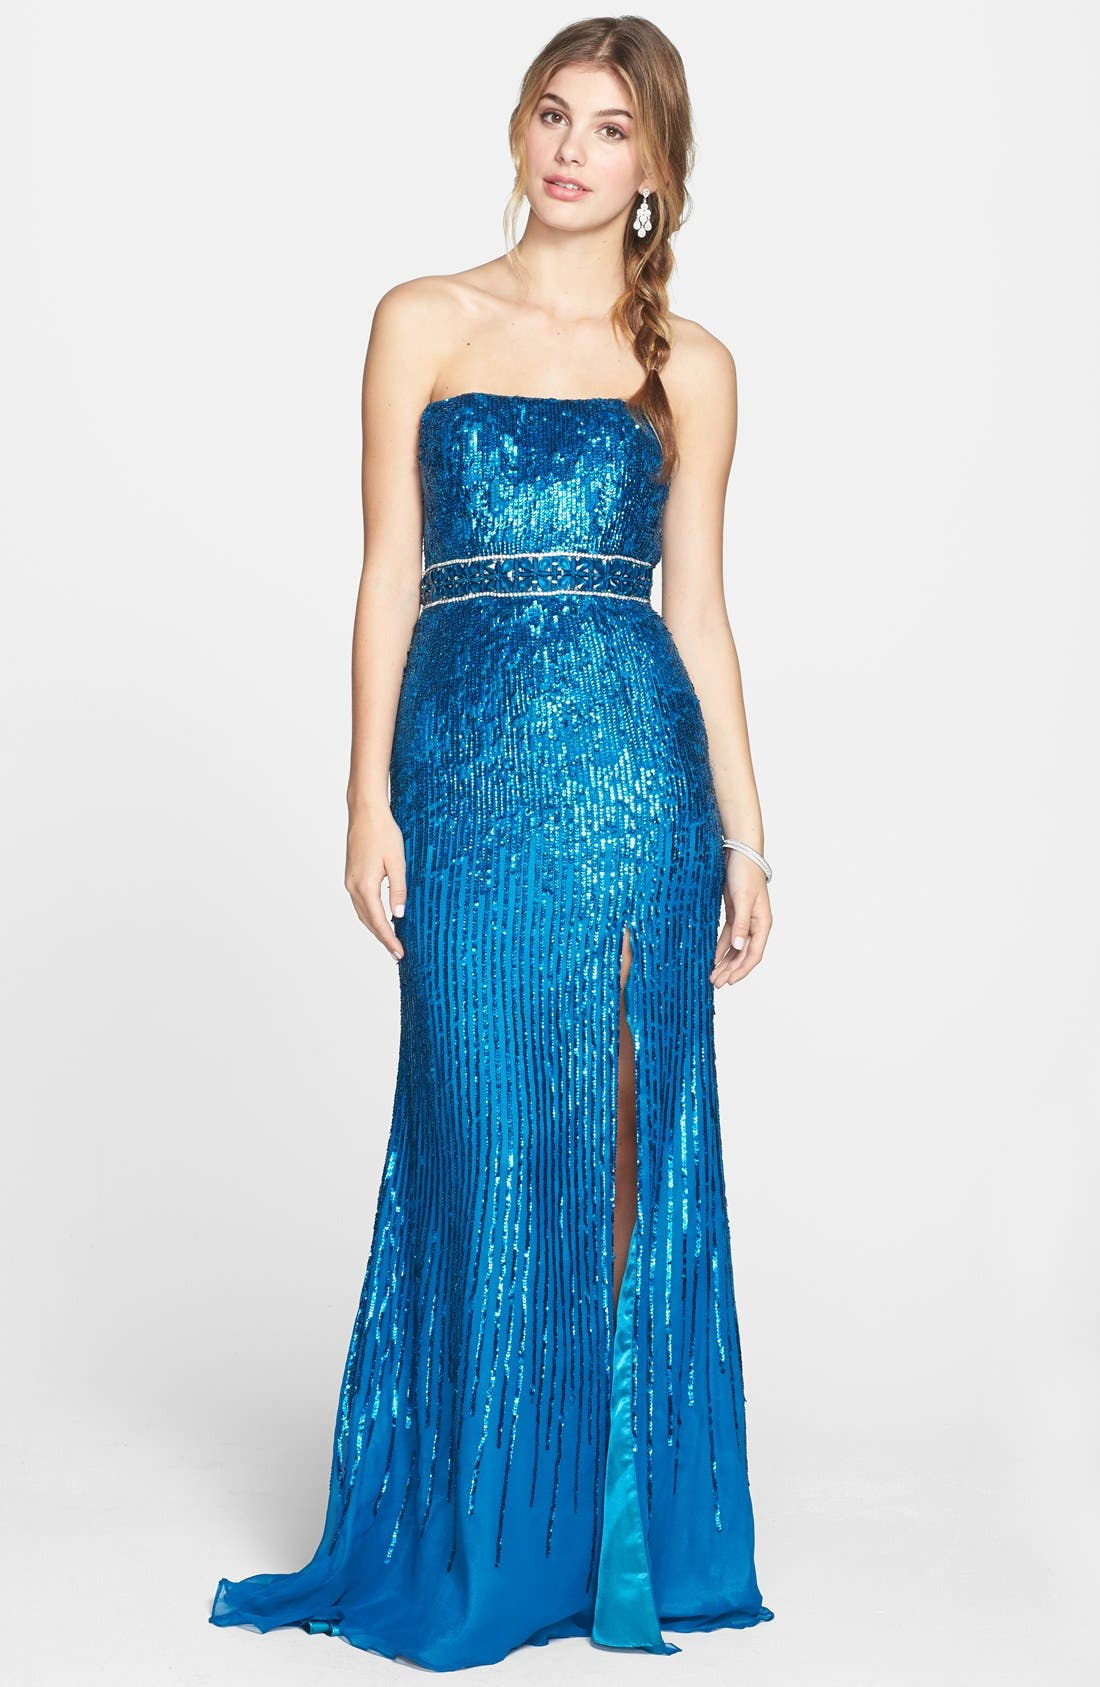 Main Image - Sherri Hill Sequin Chiffon Strapless Gown